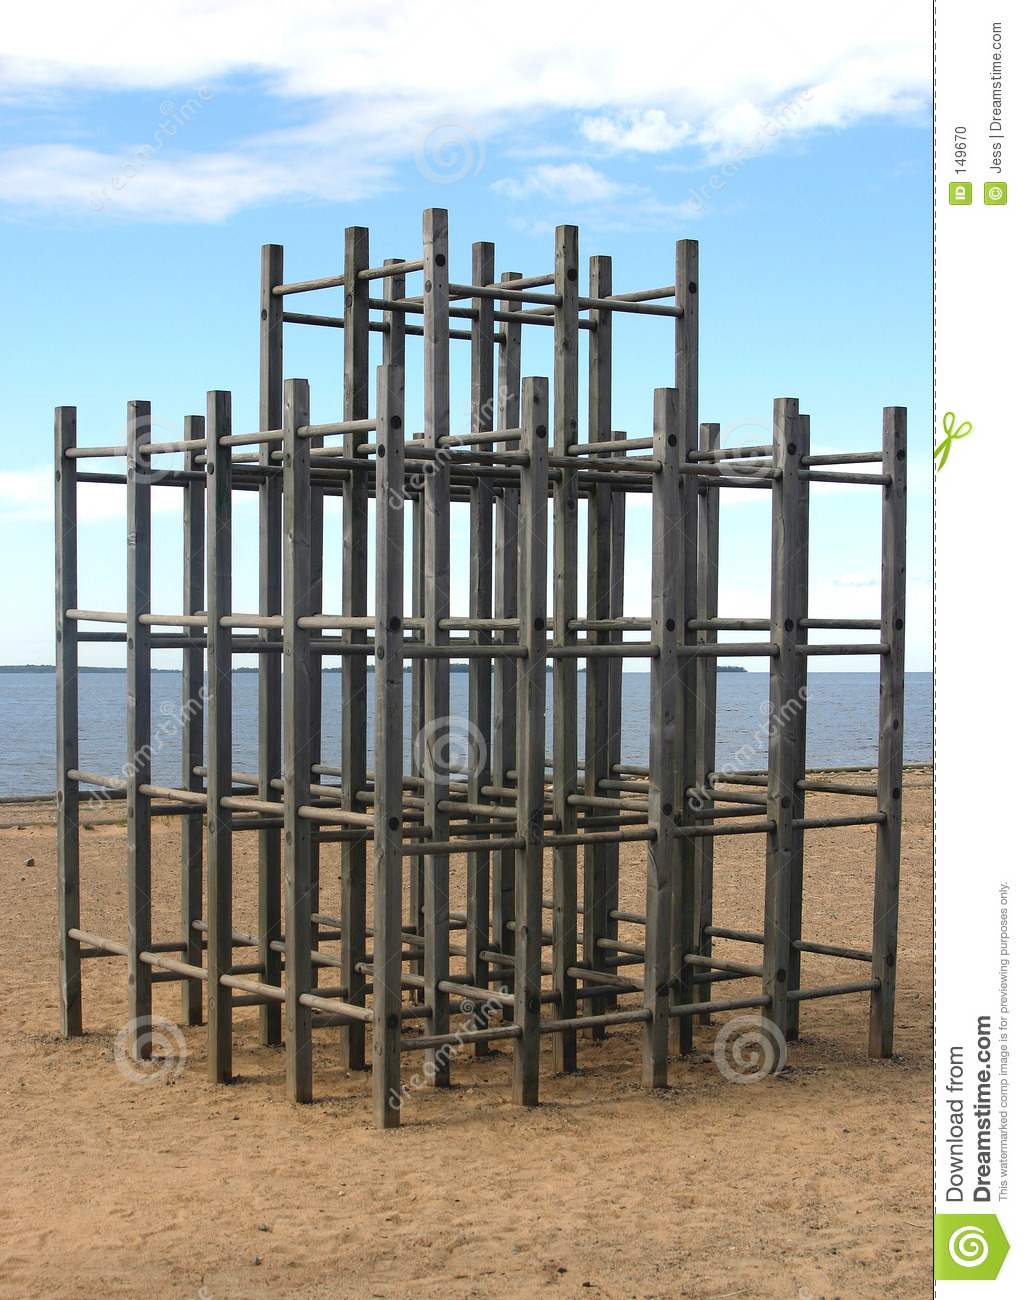 Wooden jungle gym on beach stock photo image 149670 for Wooden jungle gym plans